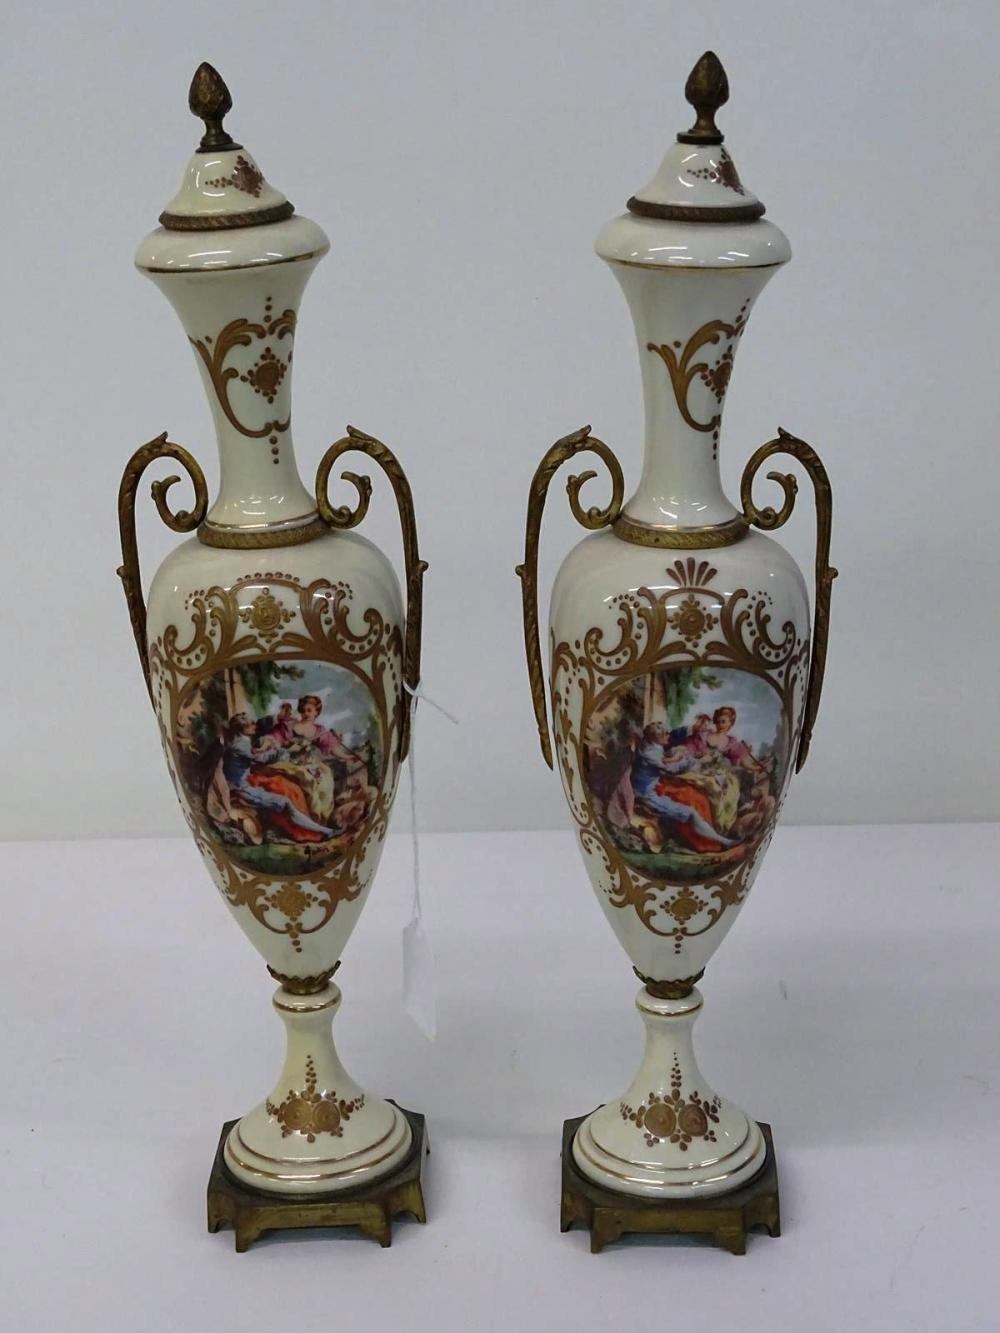 PAIR OF FRENCH ORMOLU VASES